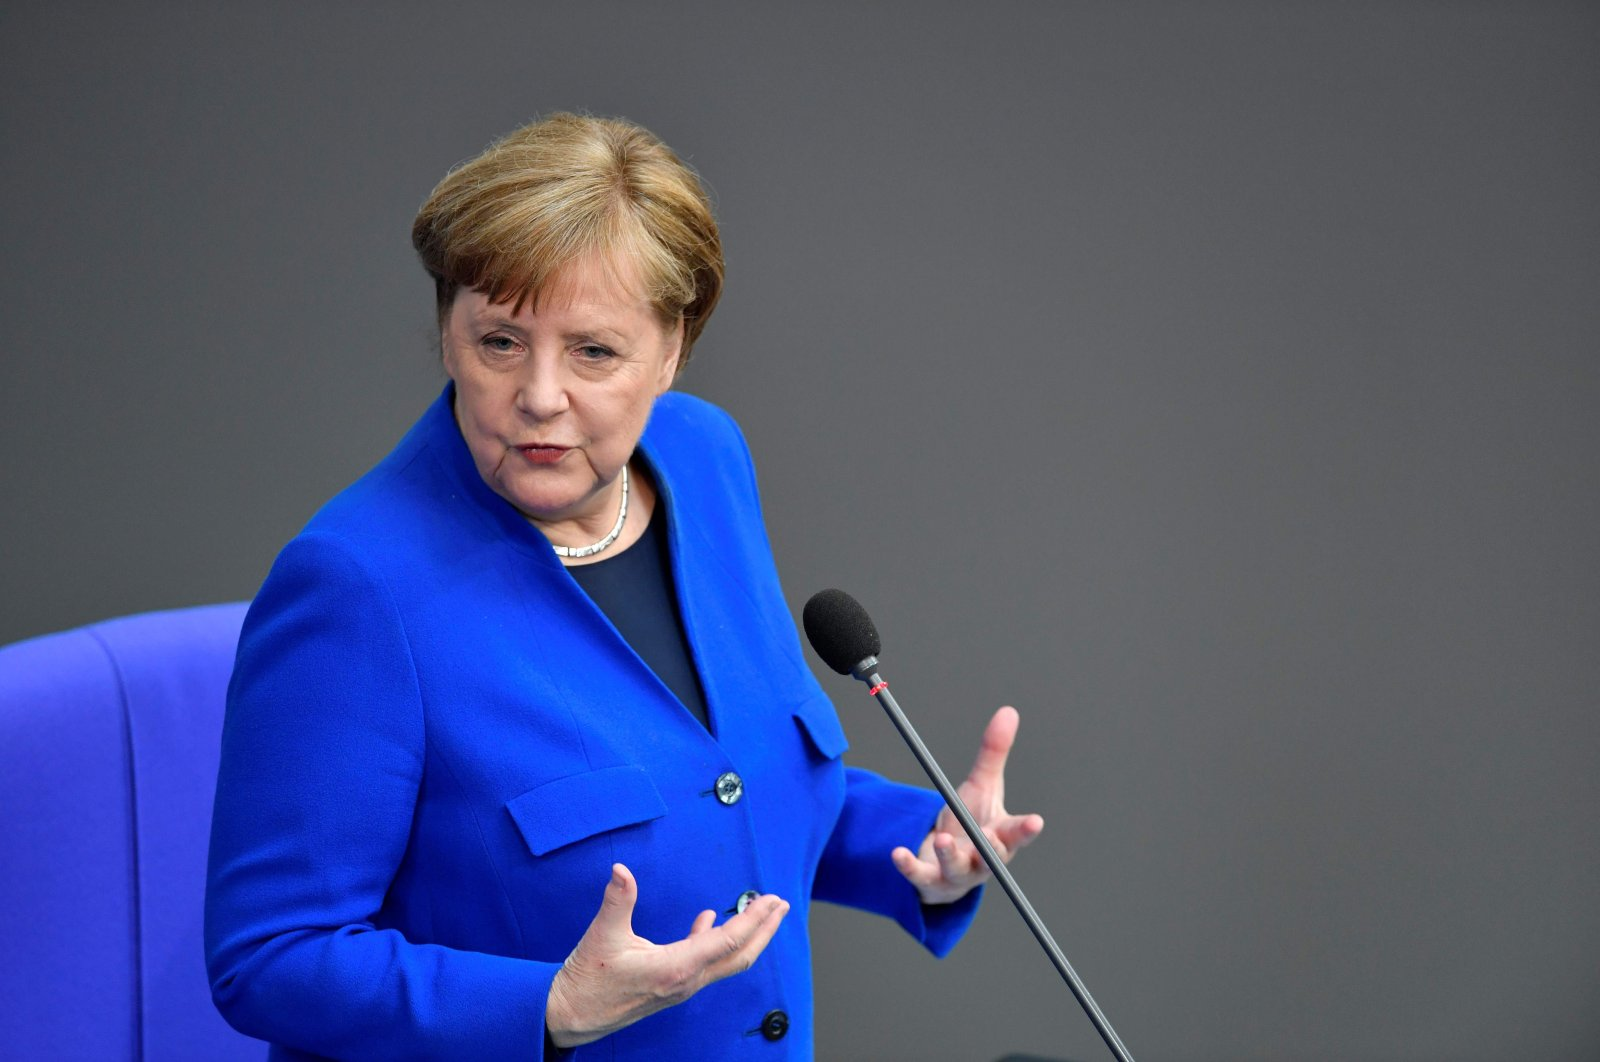 german chancellor angela merkel - photo #49